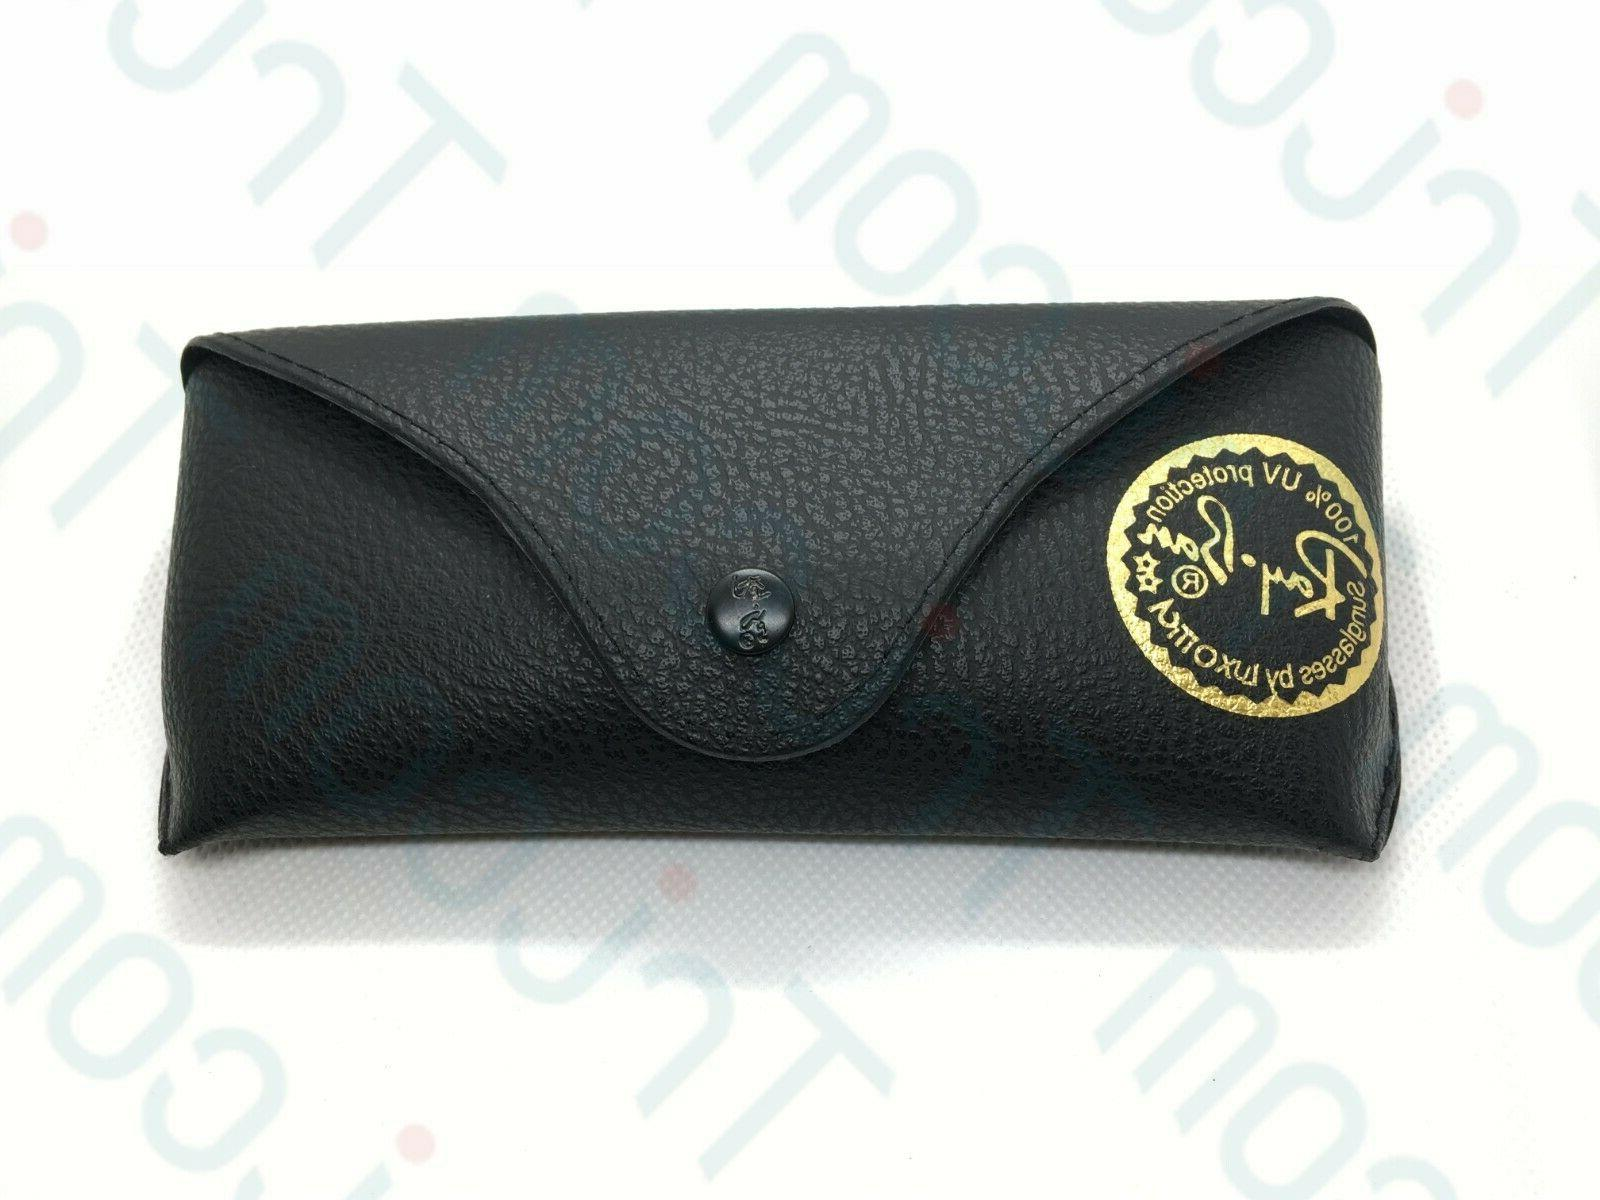 Ray-Ban Eyeglasses Soft Case Cleaning Cloth